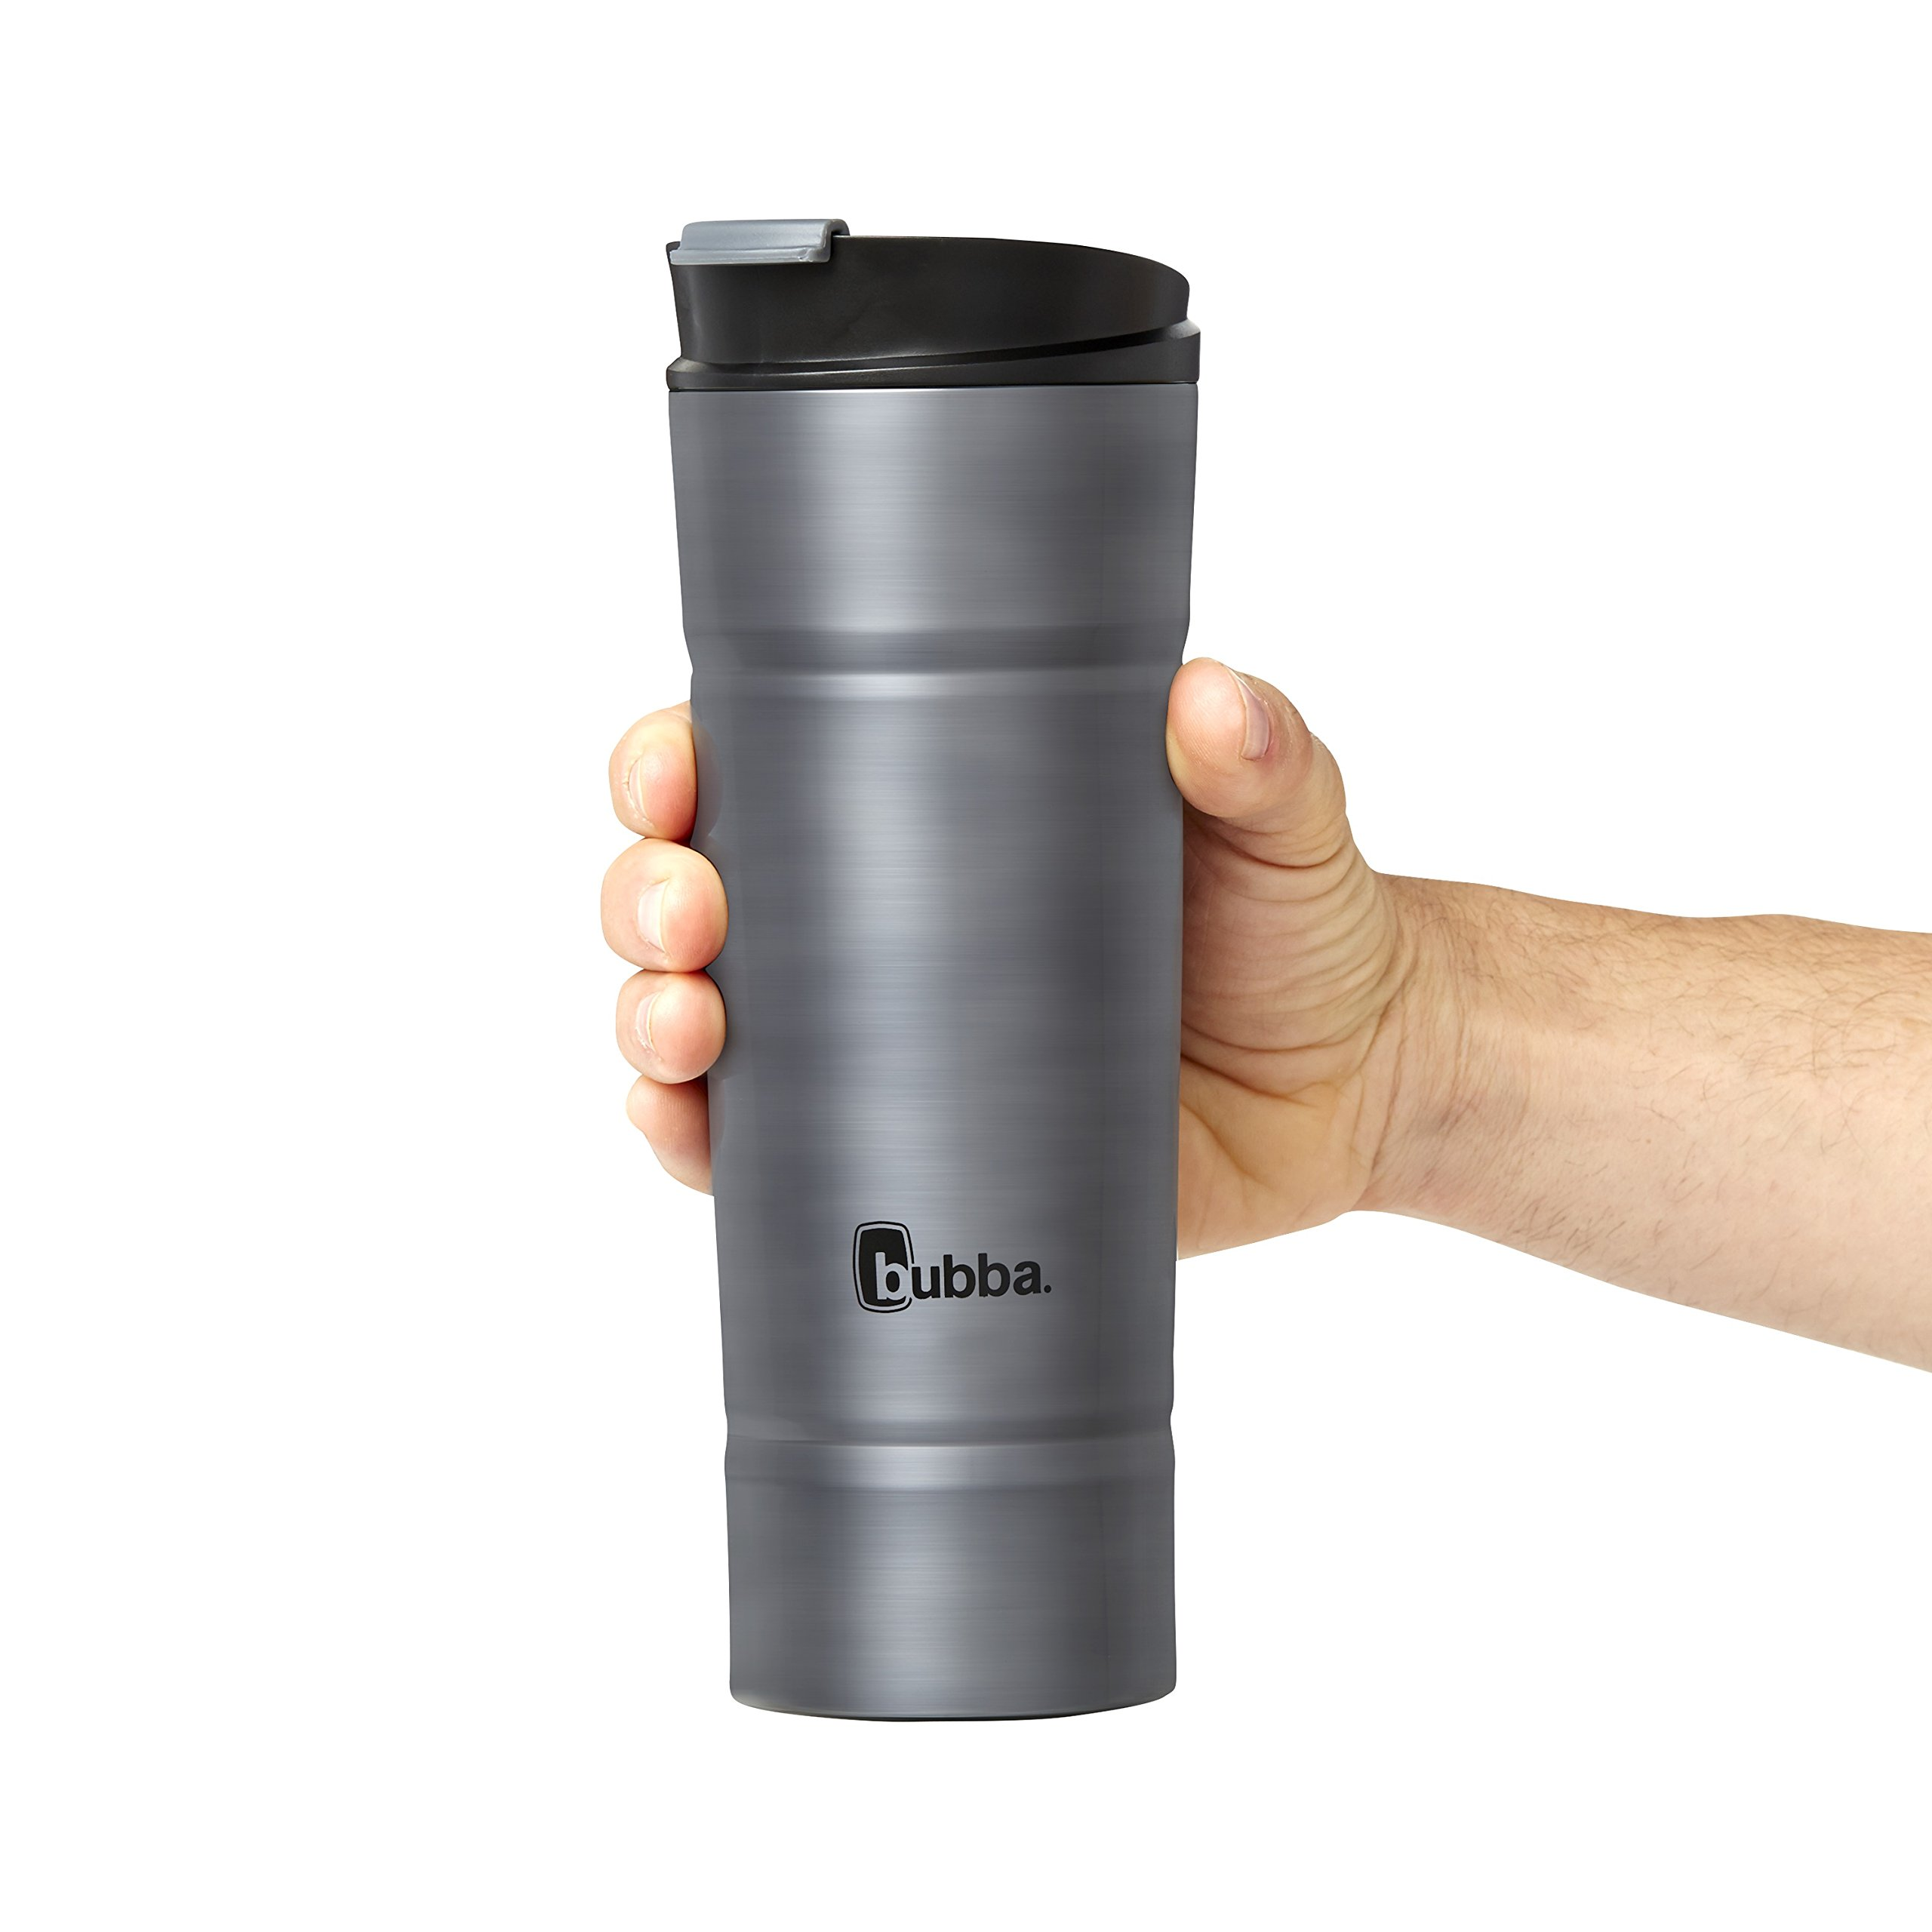 Bubba HT Vacuum-Insulated Stainless Steel Travel Mug, 20 oz, Smoke by BUBBA BRANDS (Image #4)